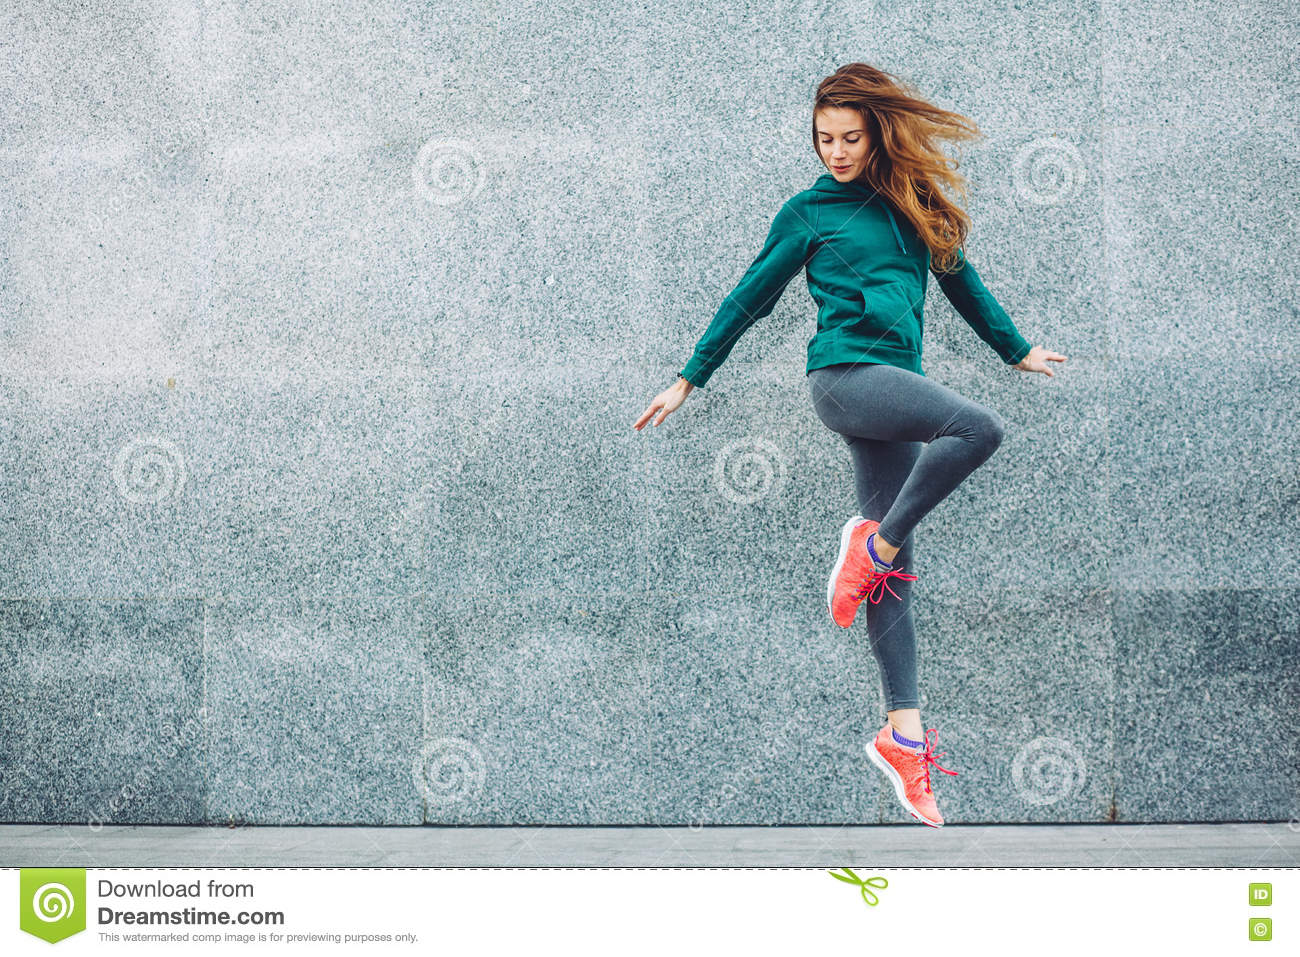 Download Fitness Sport Girl In The Street Stock Image - Image of break, hiphop: 80693027